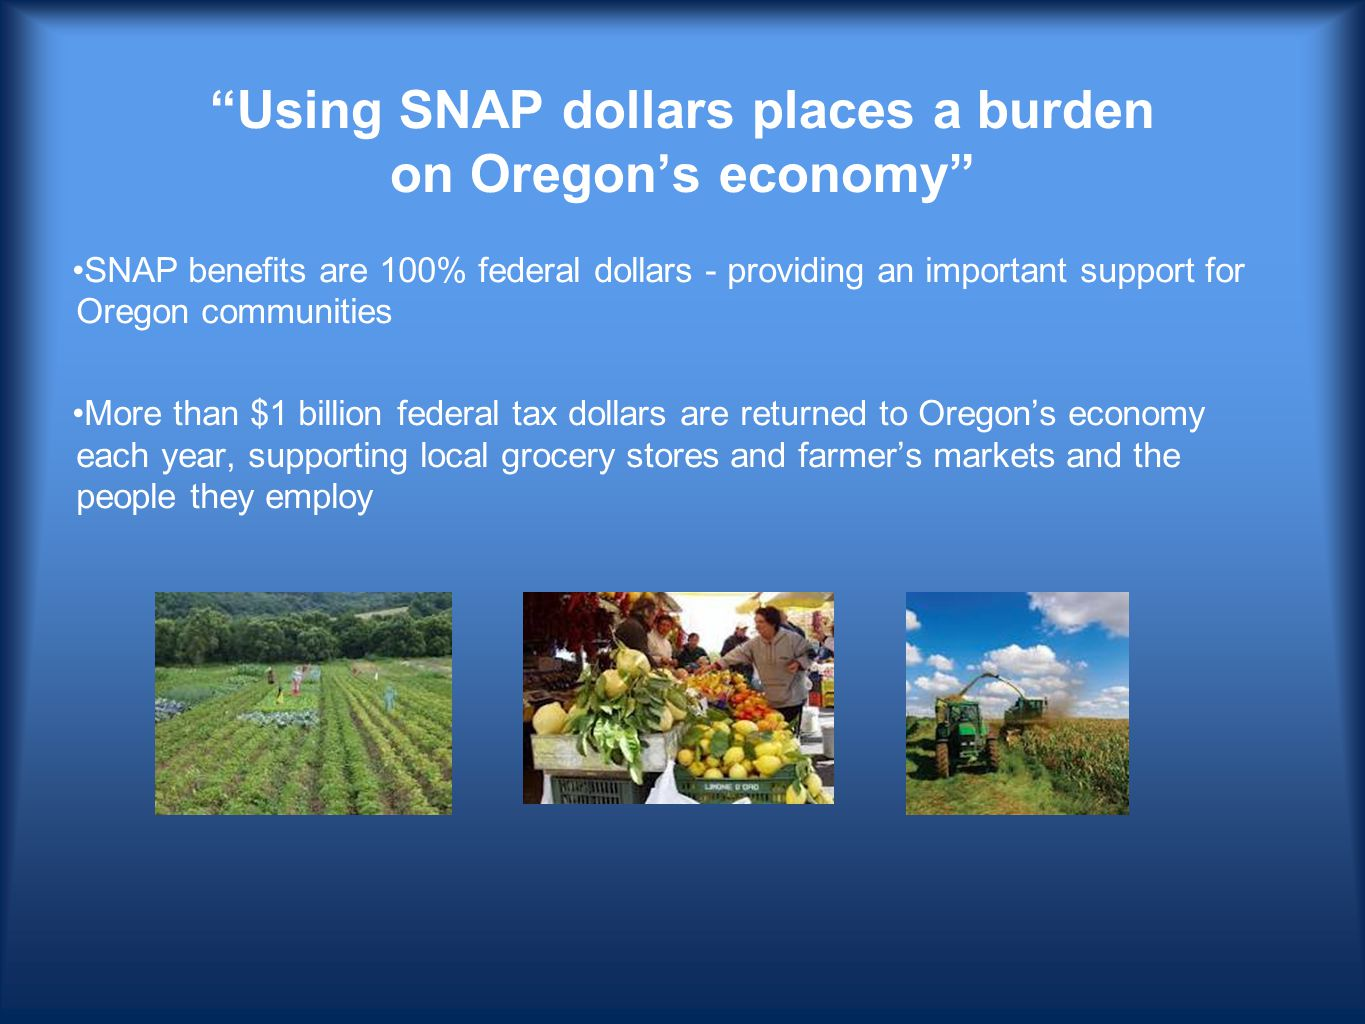 Using SNAP dollars places a burden on Oregon's economy SNAP benefits are 100% federal dollars - providing an important support for Oregon communities More than $1 billion federal tax dollars are returned to Oregon's economy each year, supporting local grocery stores and farmer's markets and the people they employ